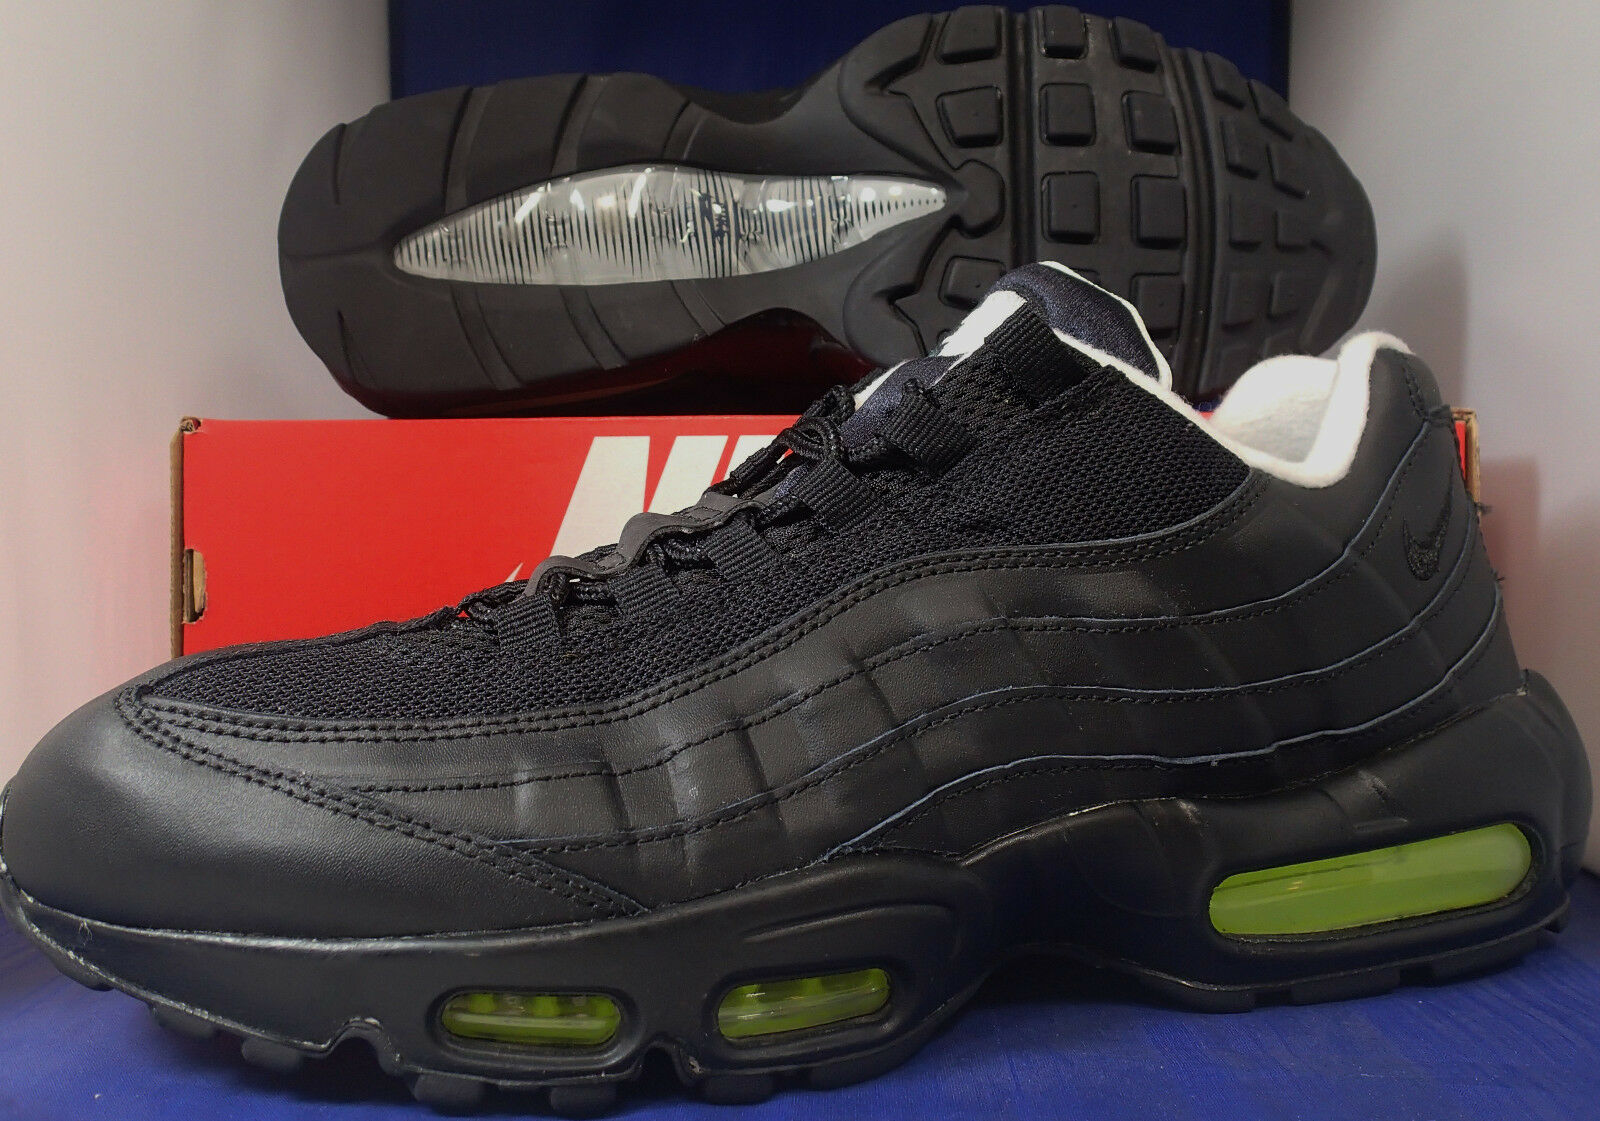 Nike Air Max 95 iD Black White Volt Price reduction